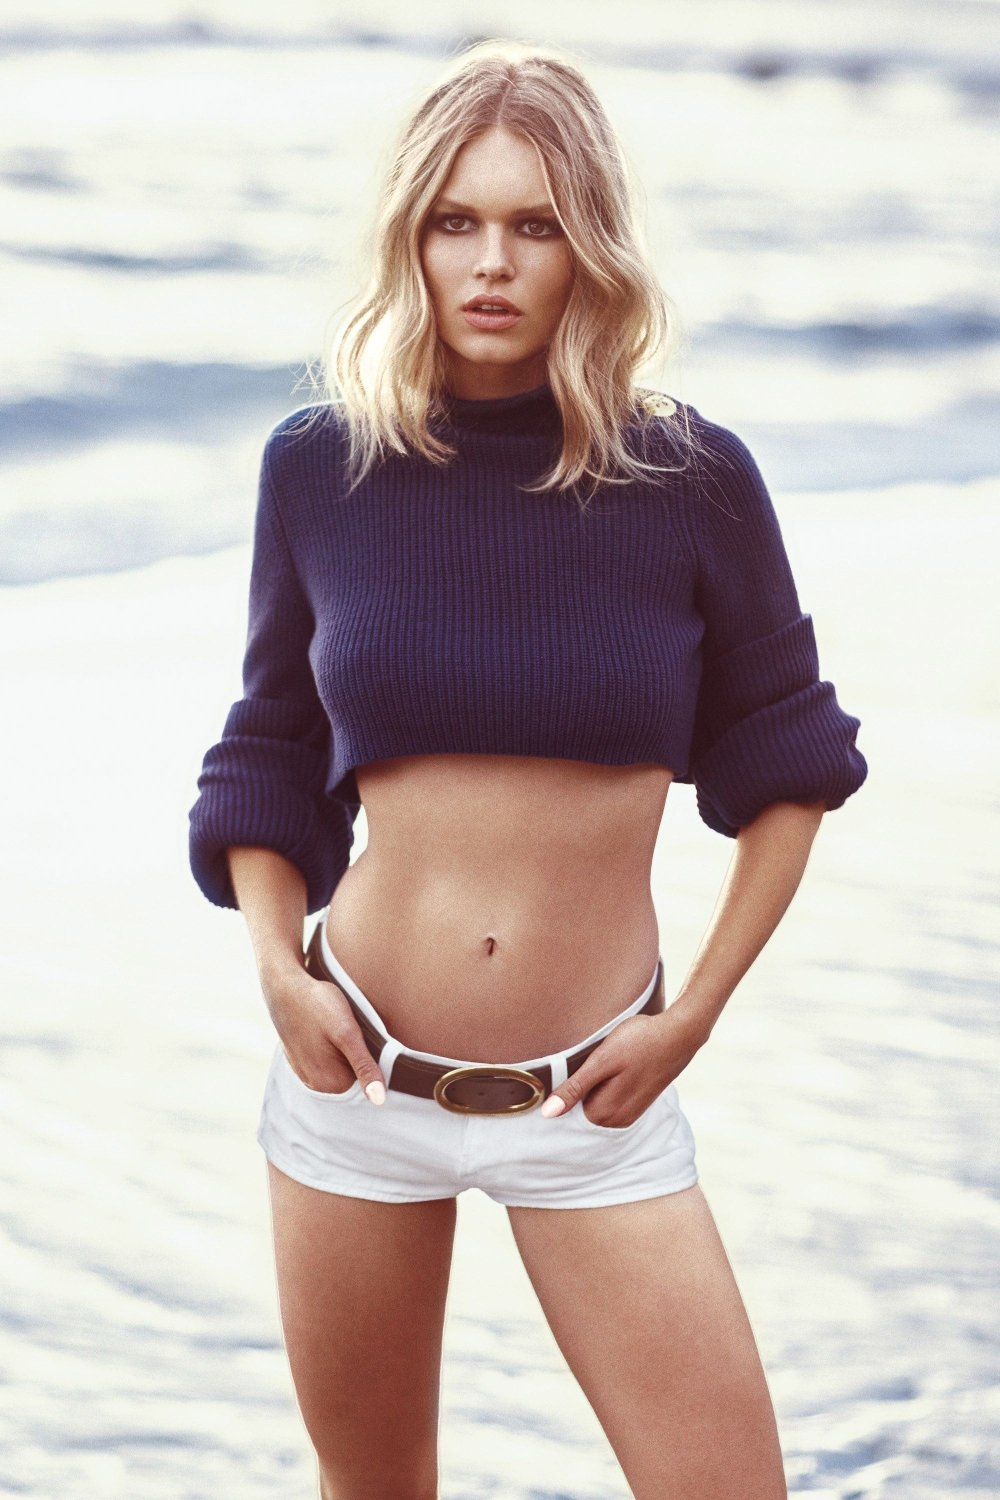 anna-ewers-for-us-harpers-bazaar-may-2015-7